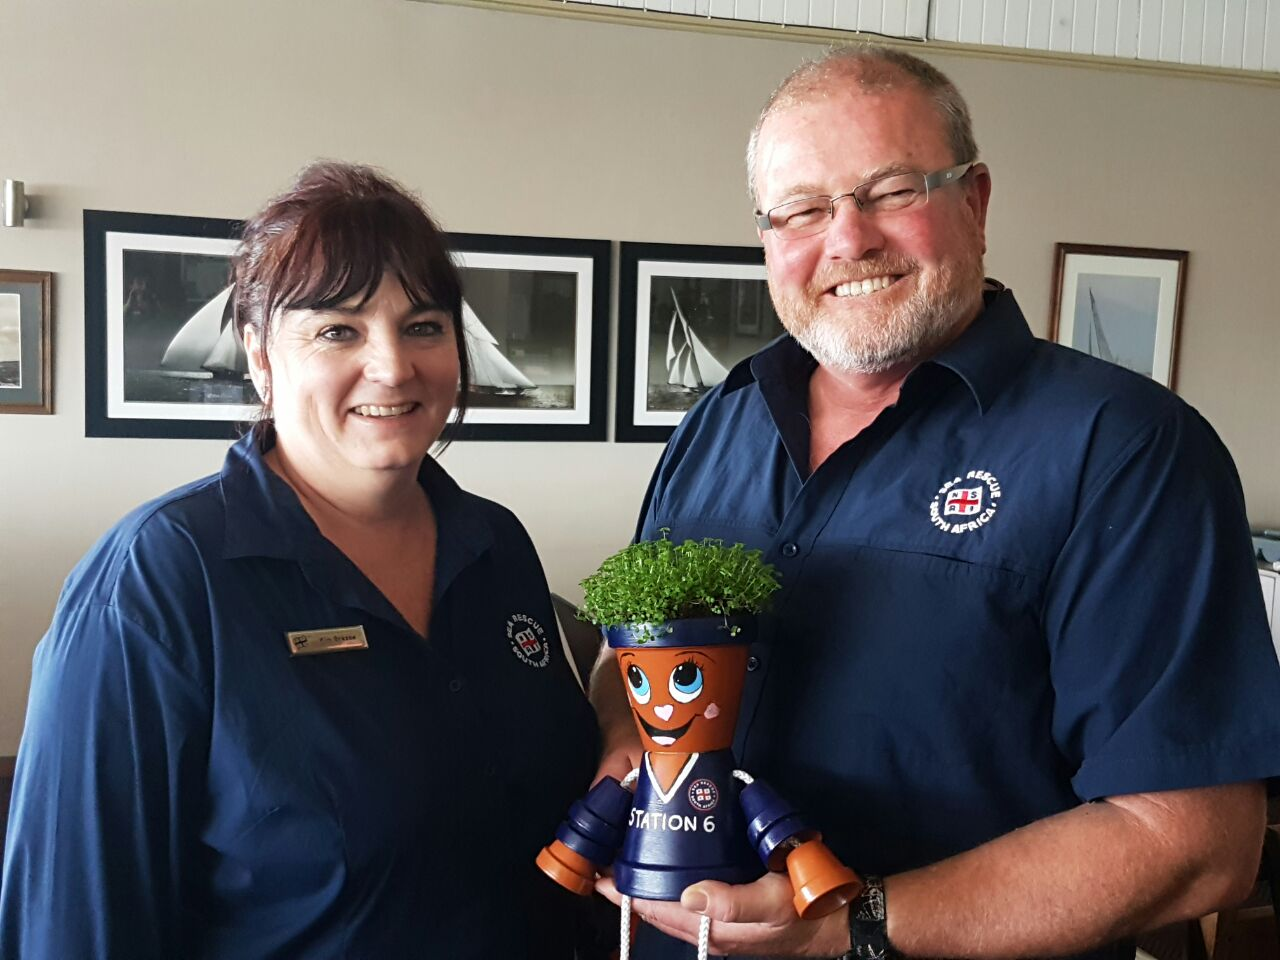 Kim Gresse presenting Station 6 with their very first potplant for their newly renovated base as per their wishlist.